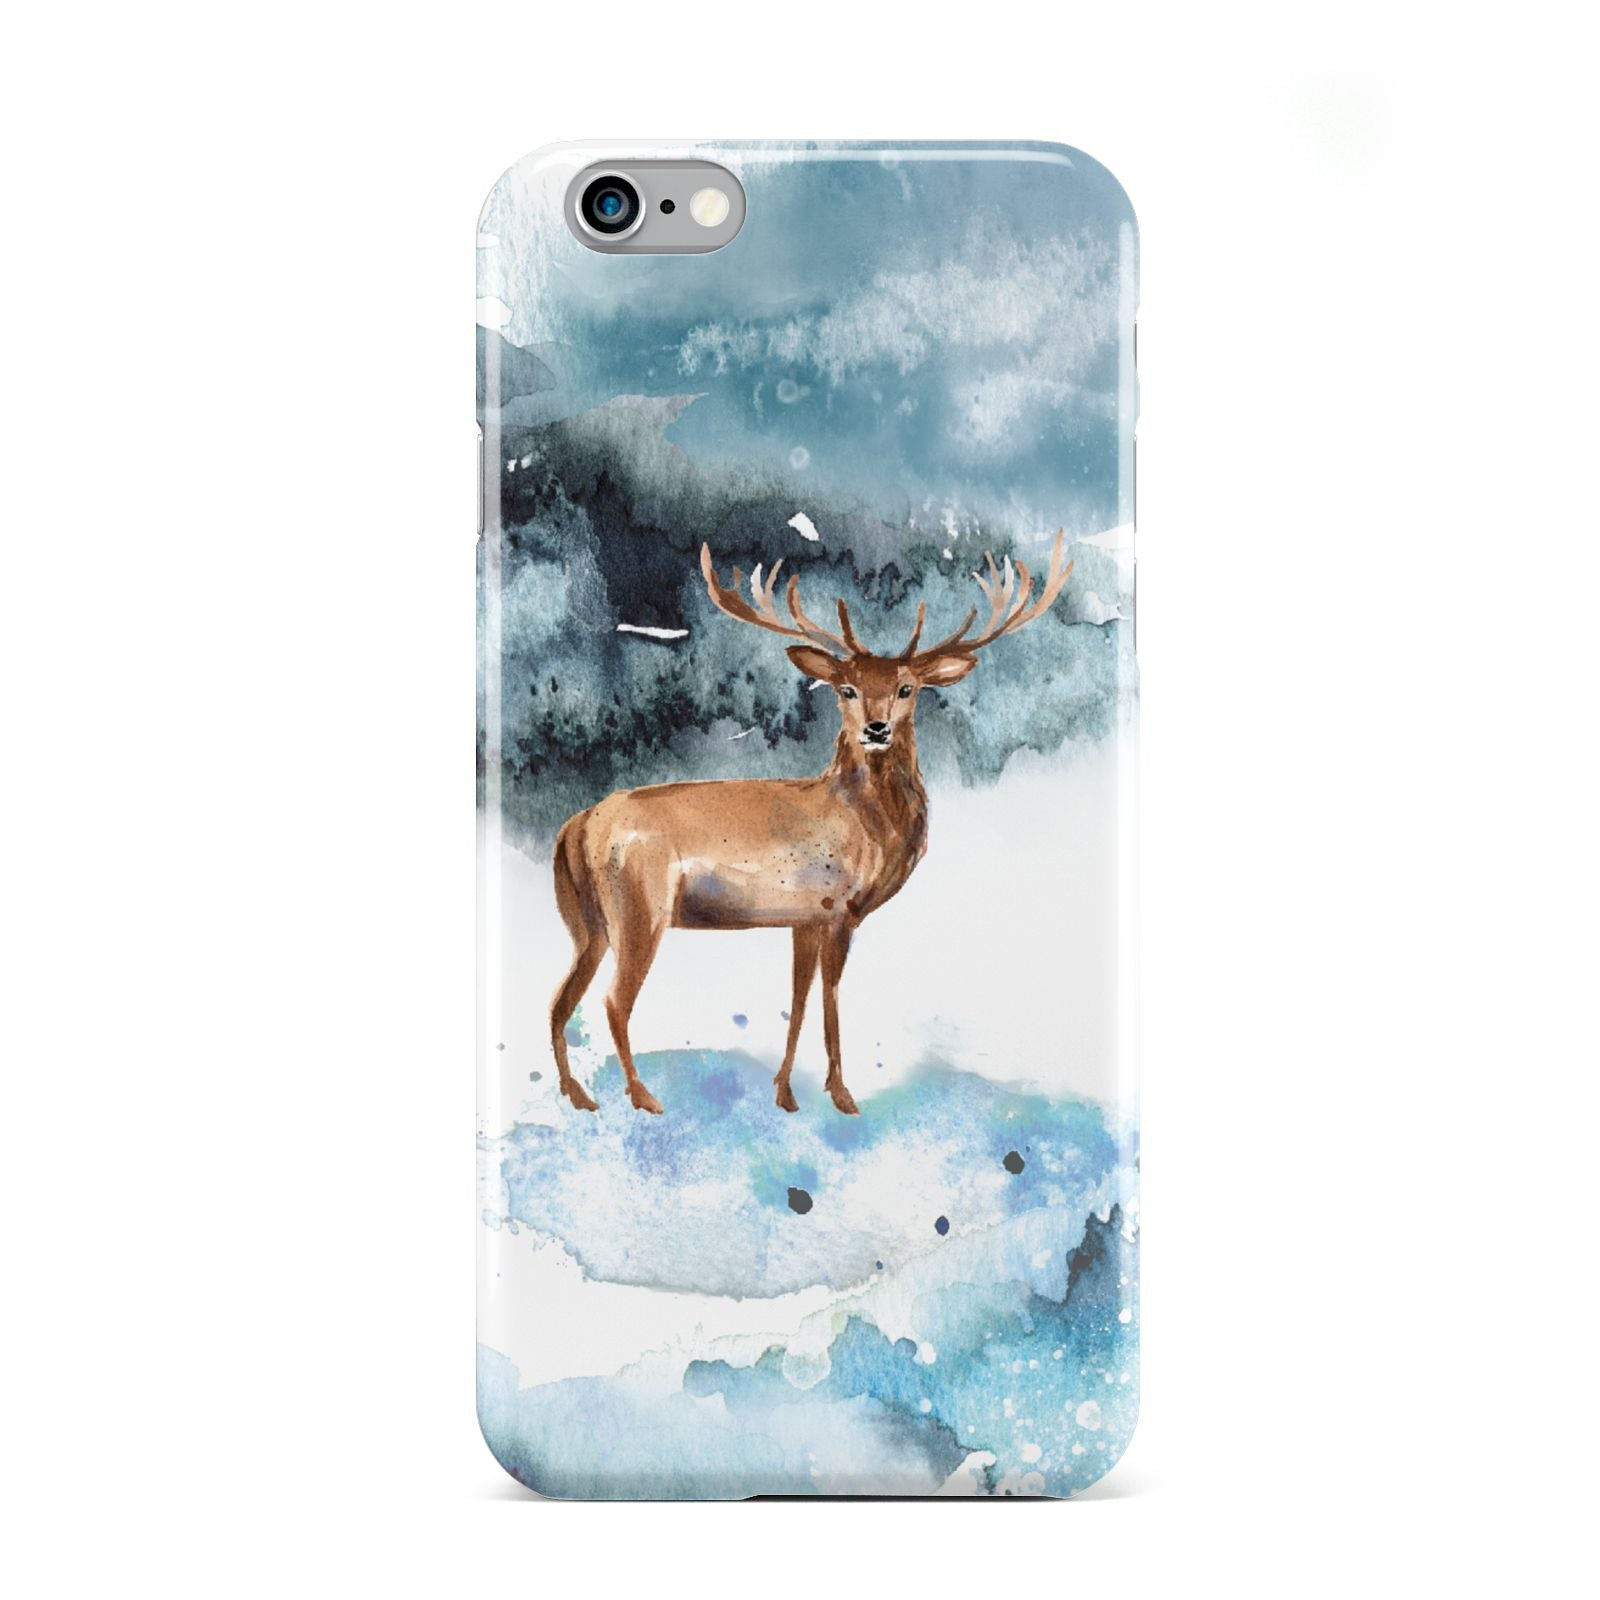 Christmas Winter Stag Apple iPhone 6 Case